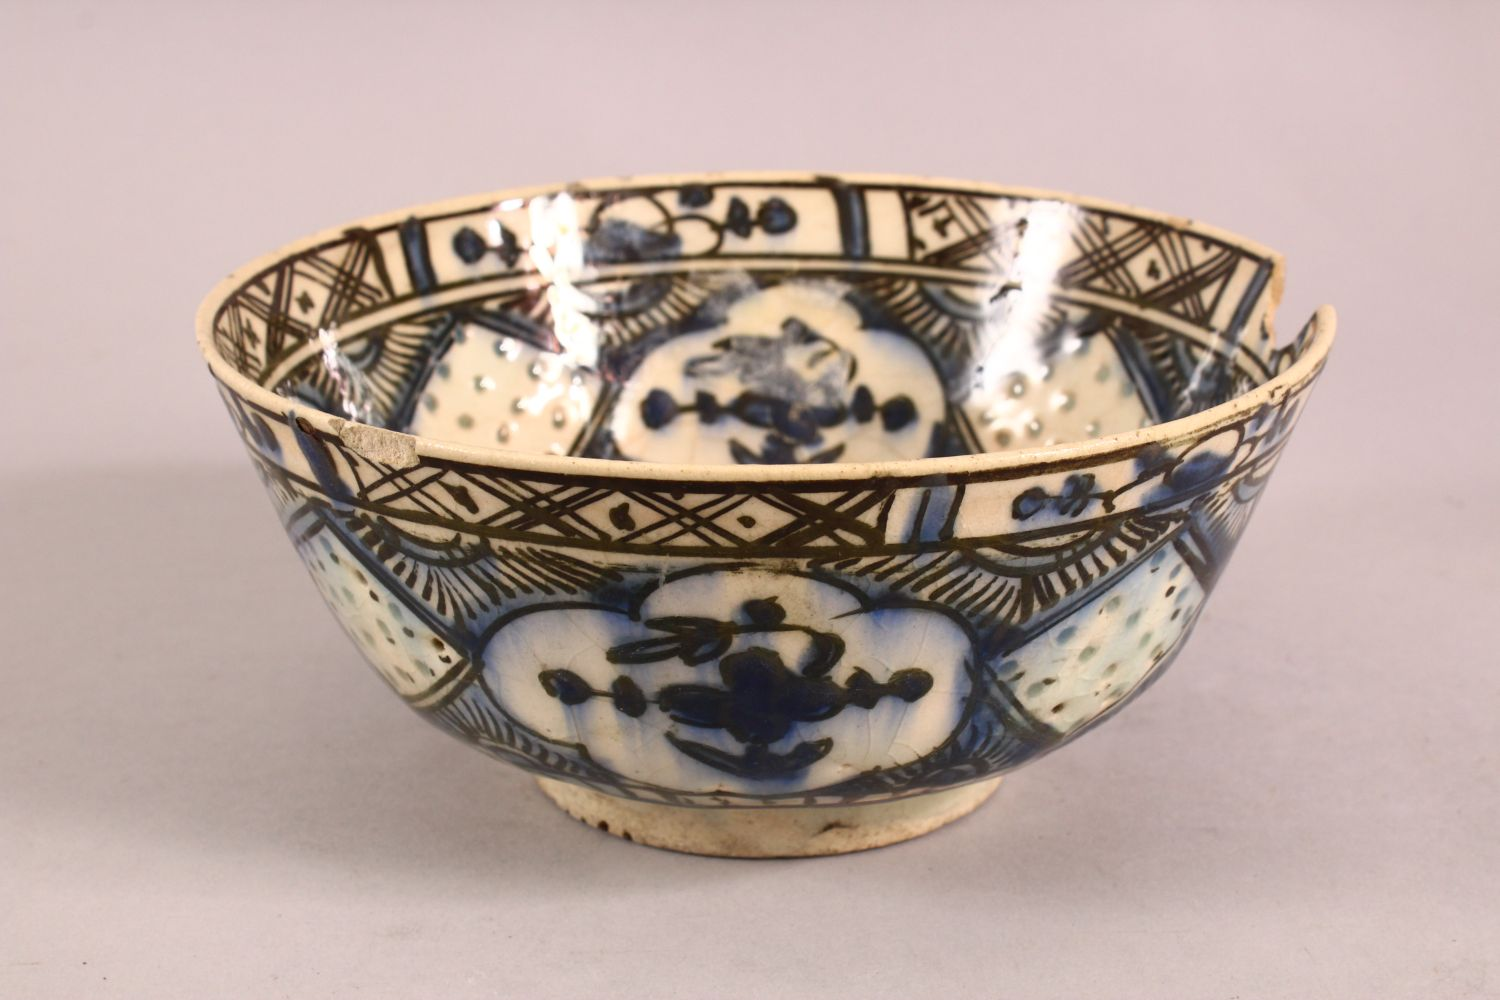 A 19TH CENTURY OR EARLIER TURKISH POTTERY BOWL, with floral motif decorations, (af) 18.5cm - Image 2 of 6